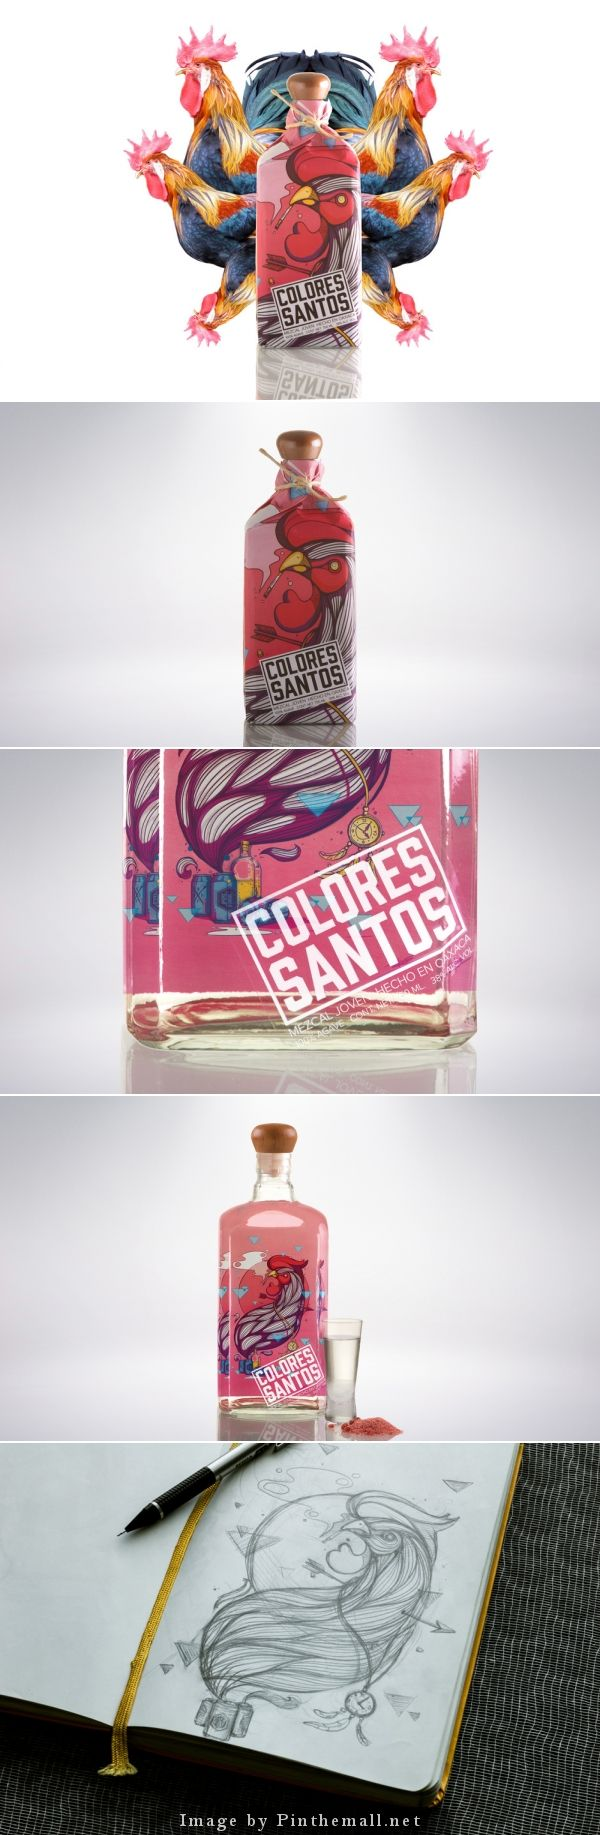 Love this Colores Santos #packaging but not sure I make the Mezcal connection curated by Packaging Diva PD created via http://www.thedieline.com/blog/2014/8/5/colores-santos